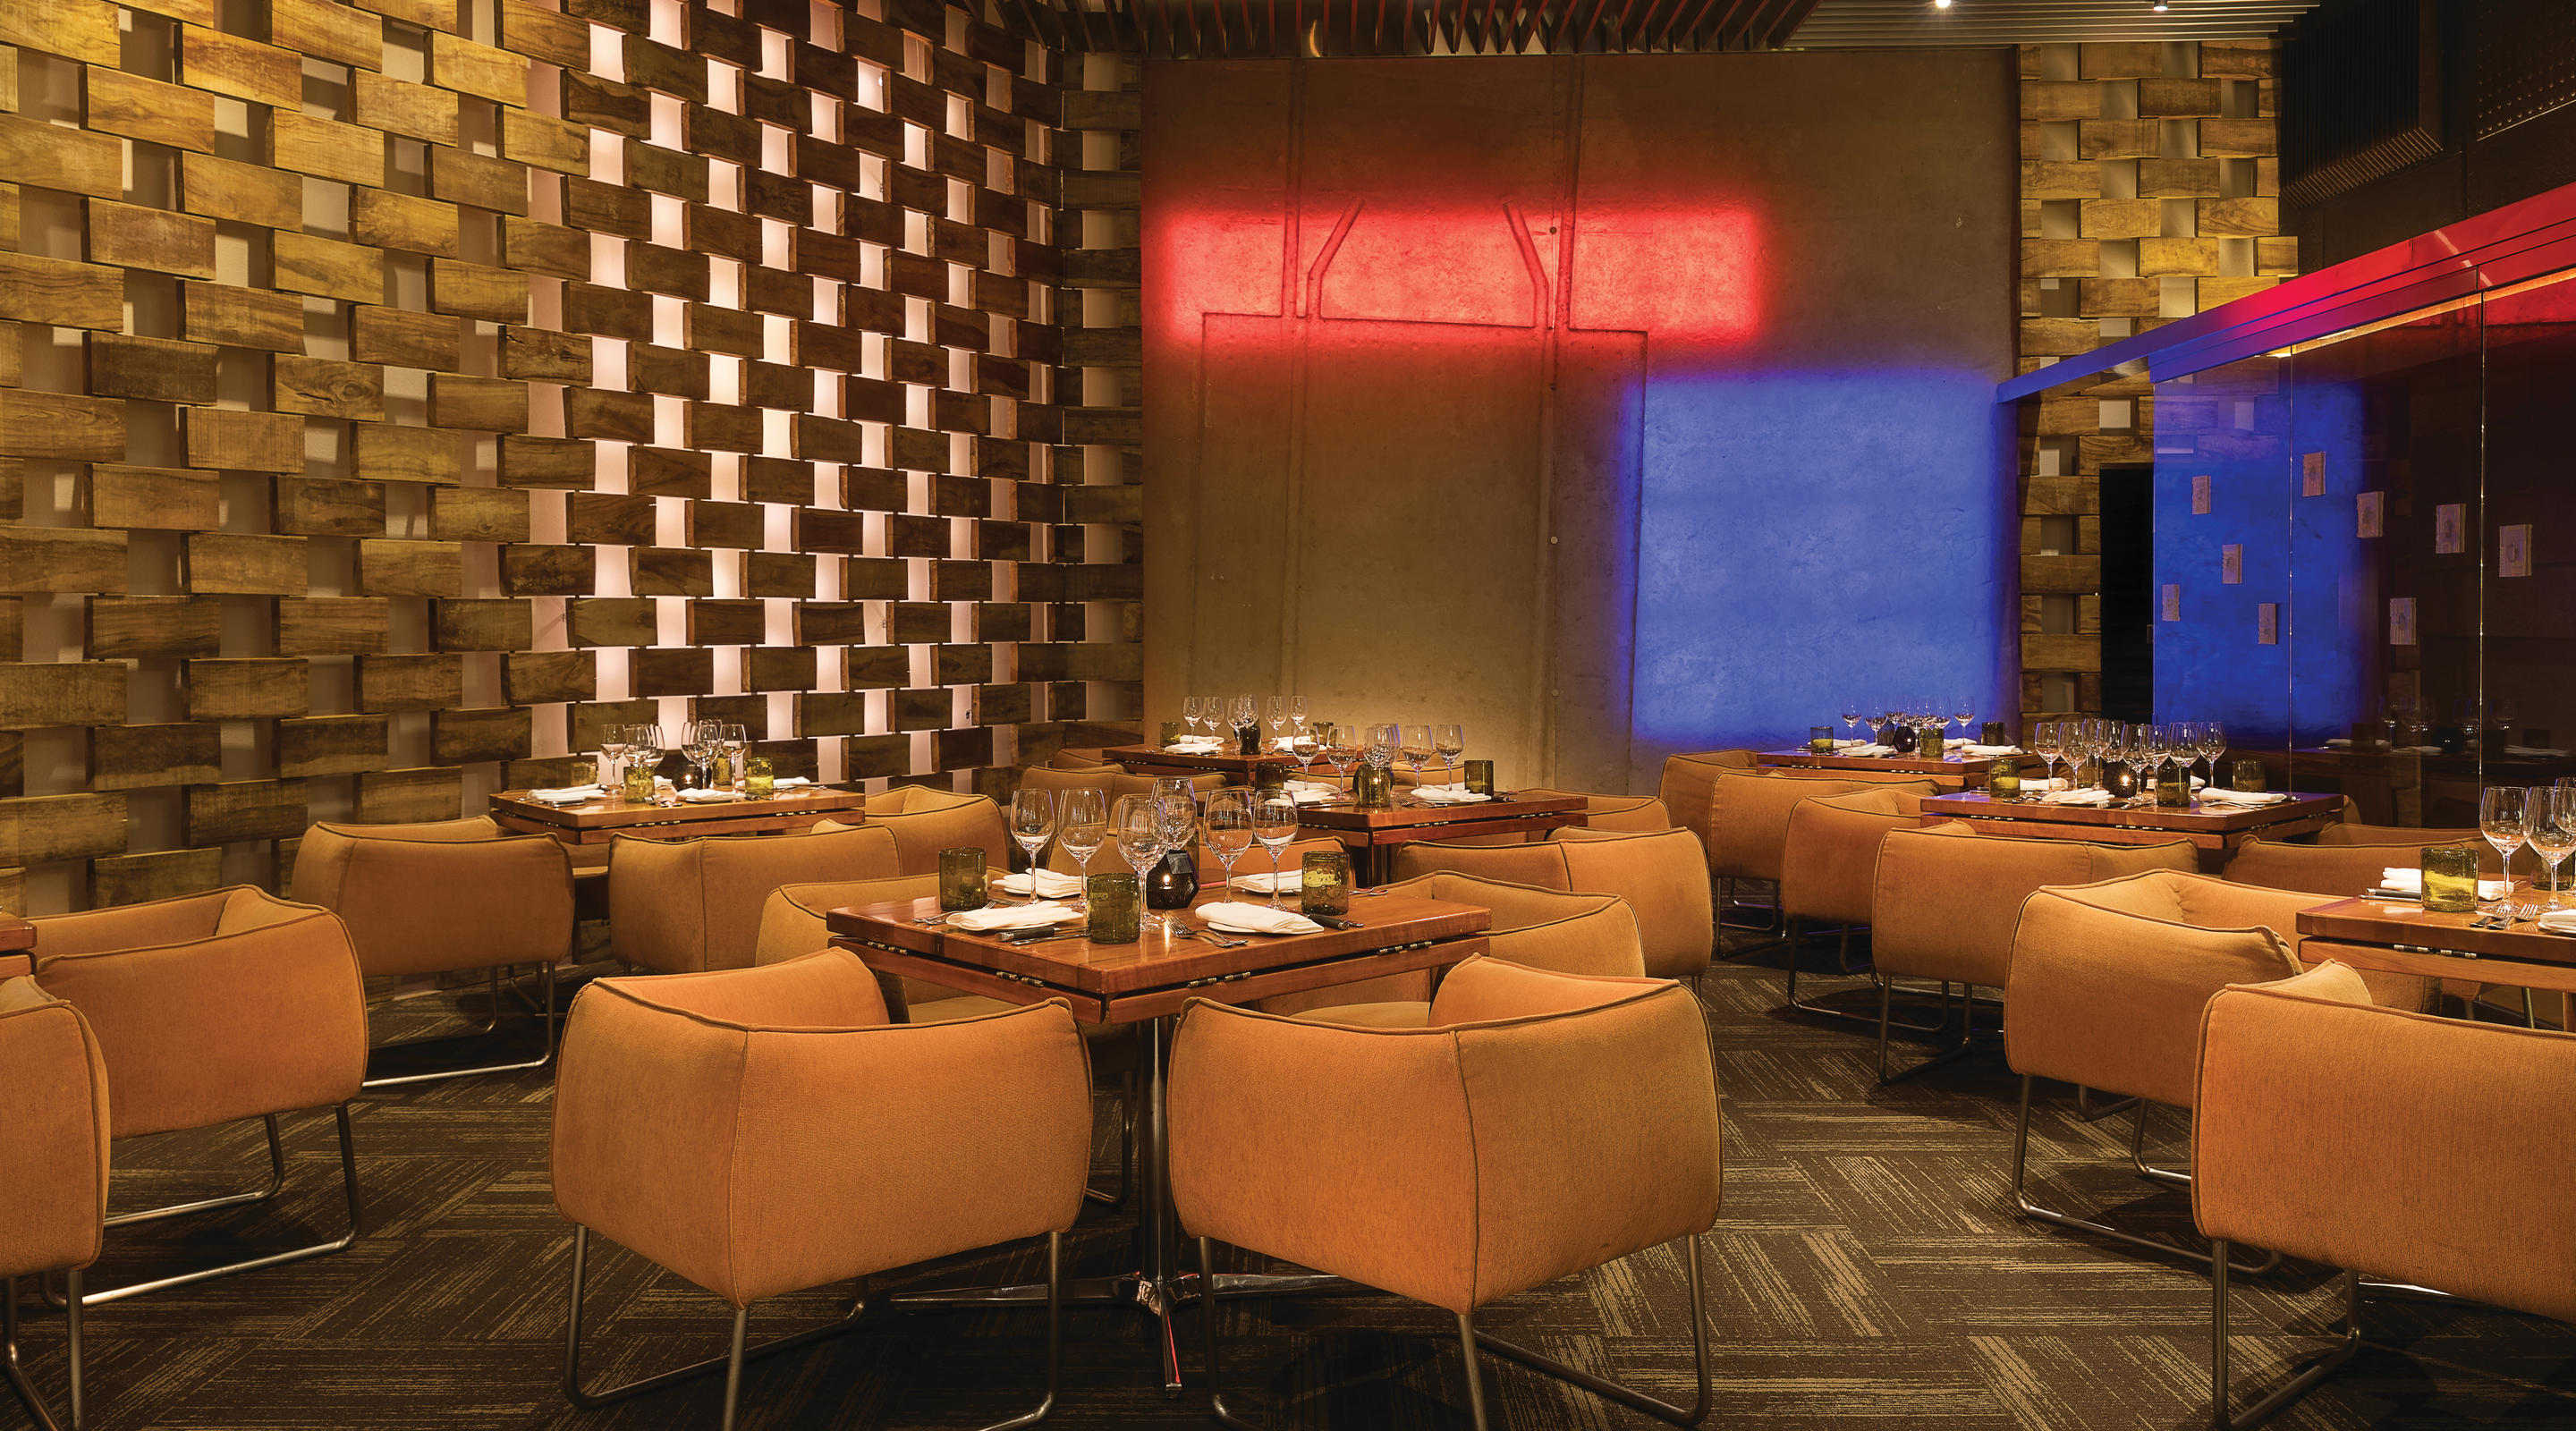 Interior dining area with wall lighting at Stripsteak.